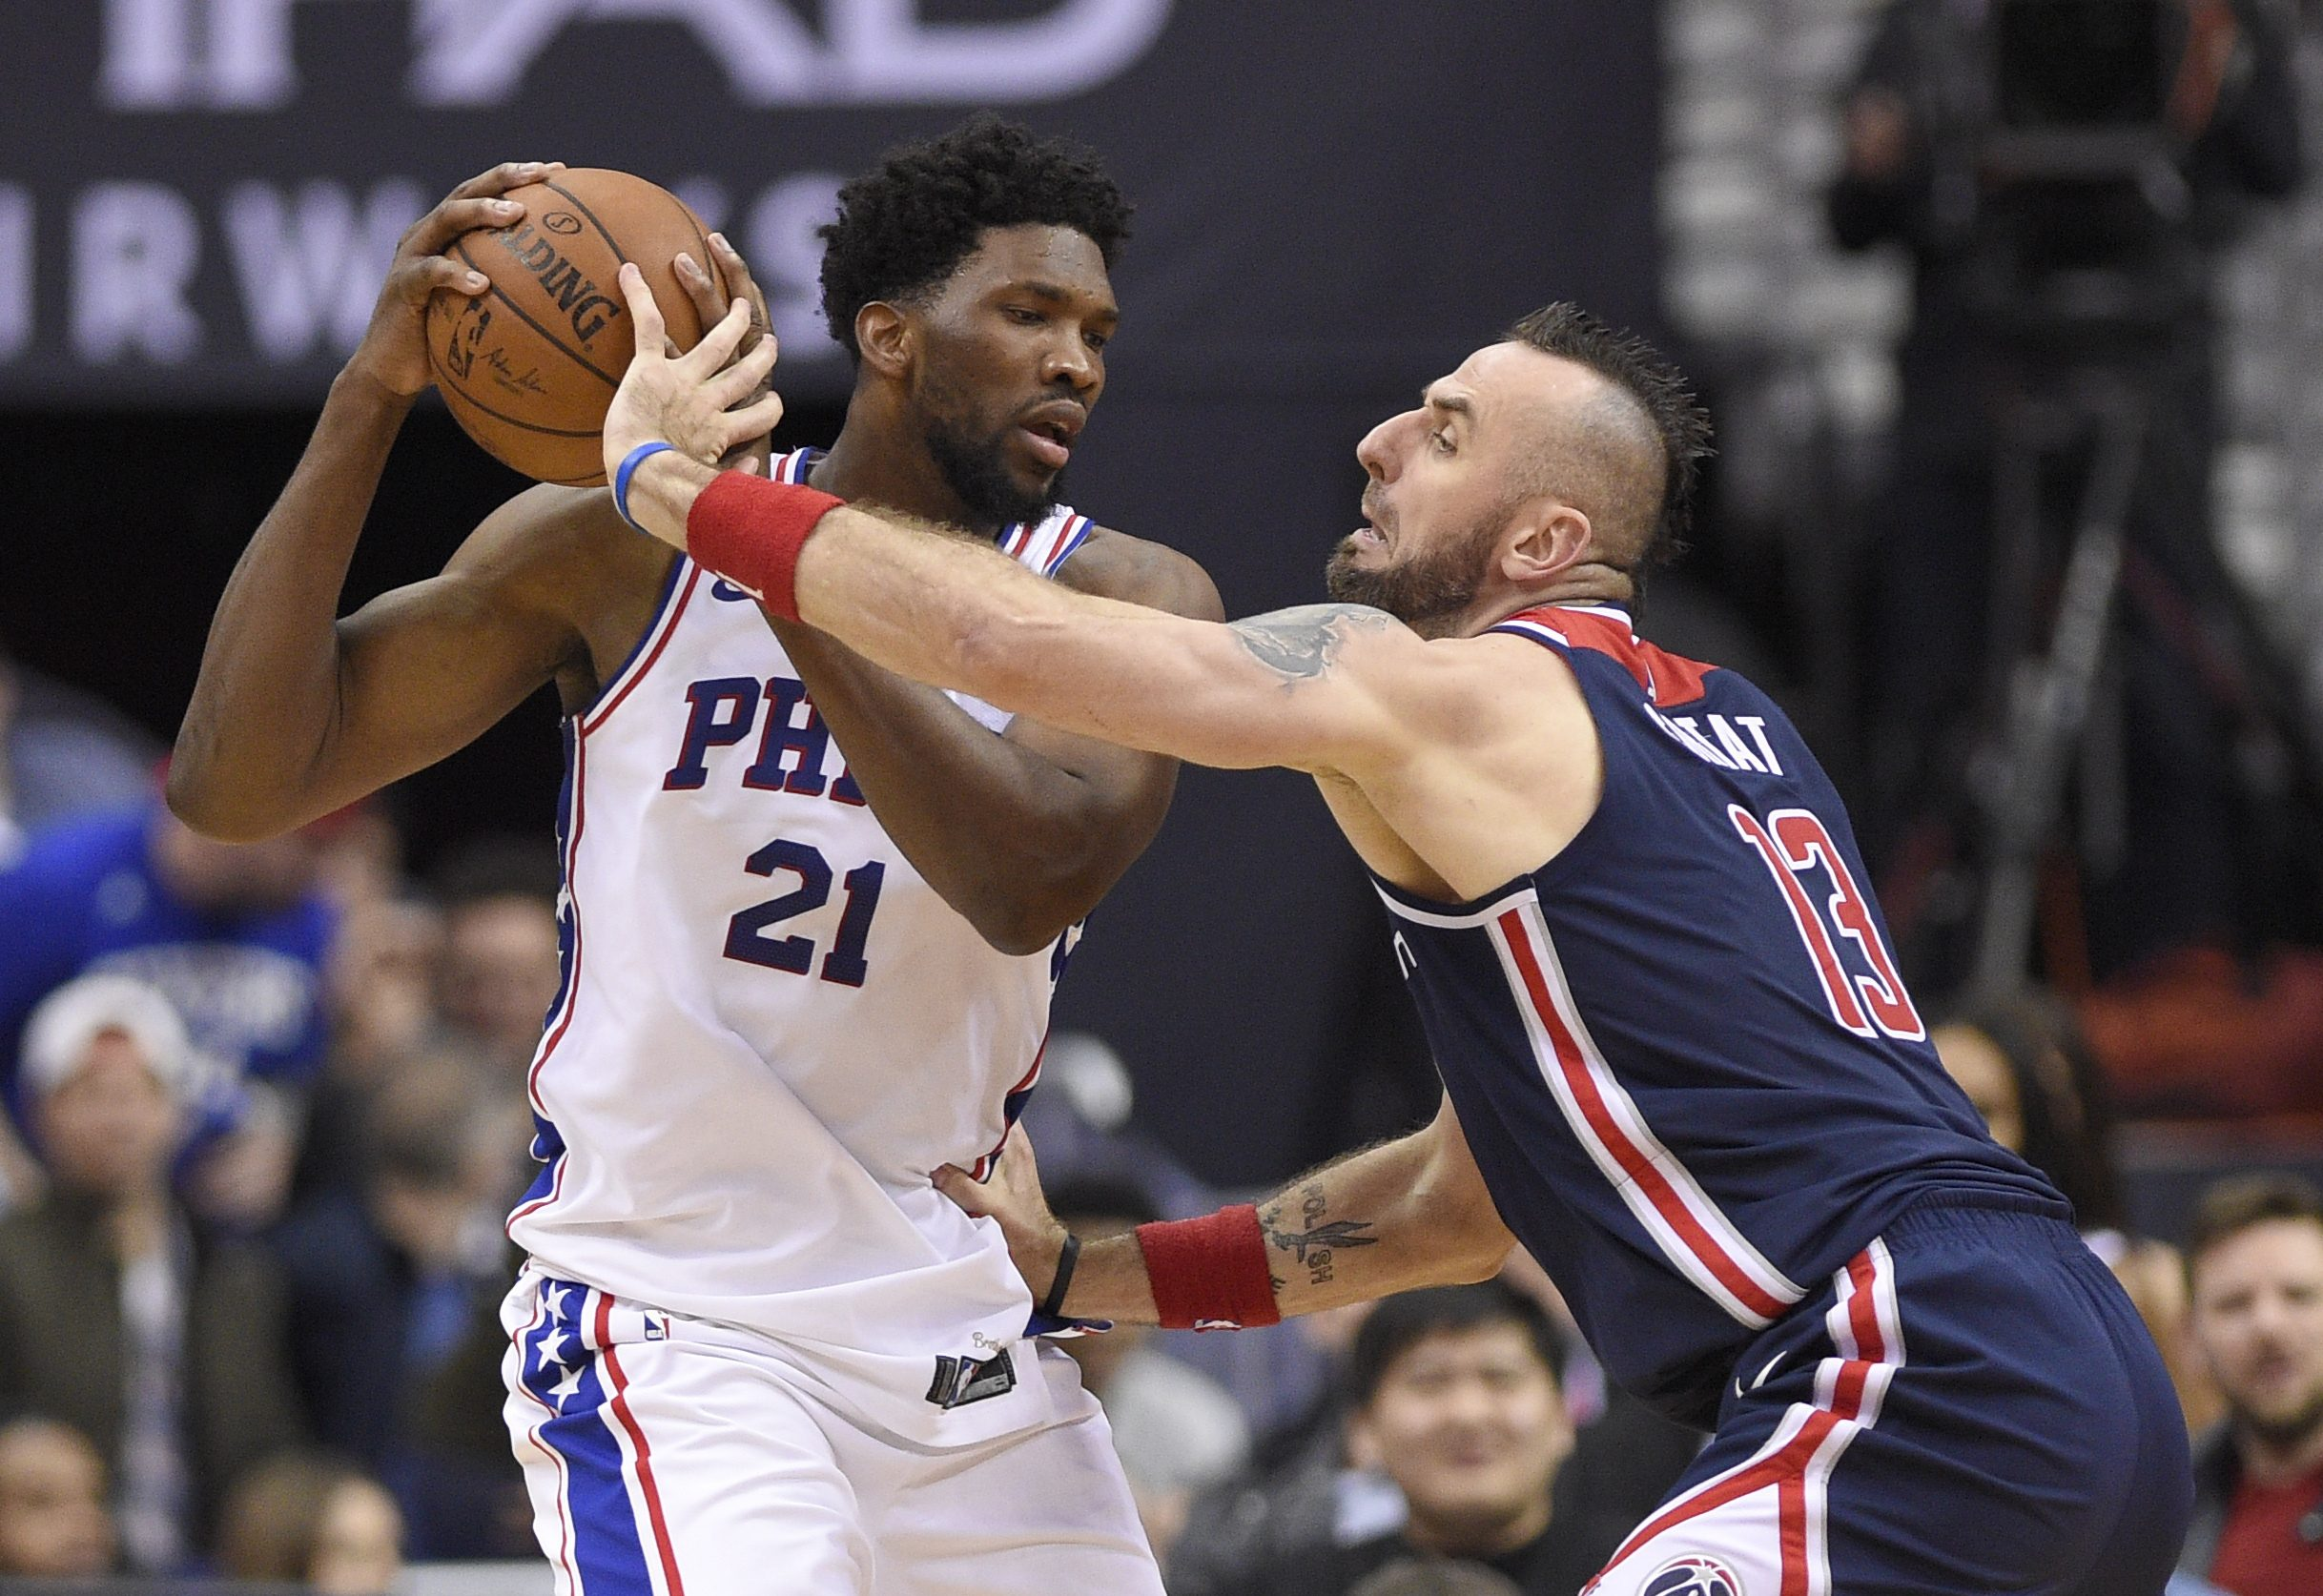 Wizards center Marcin Gortat fights for the ball against Joel Embiid during the Sixers 109-94 loss Sunday in Washington.